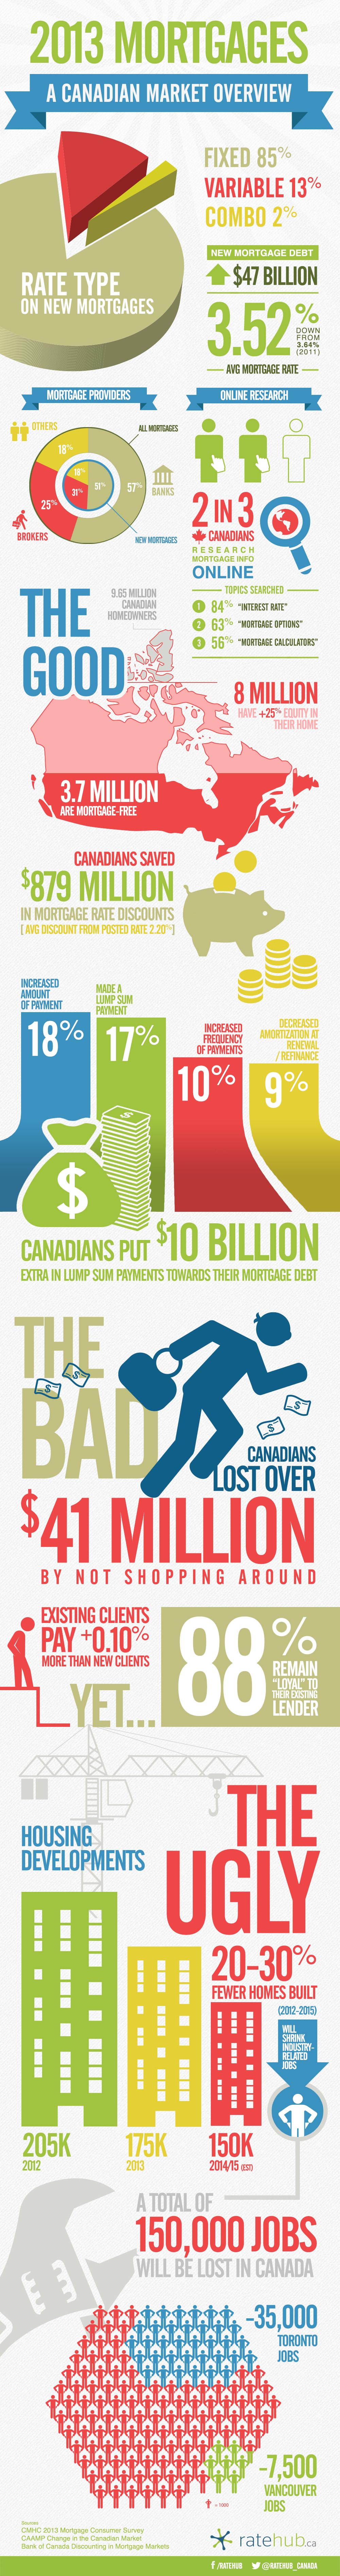 2013 Mortgages a Canadian market overview